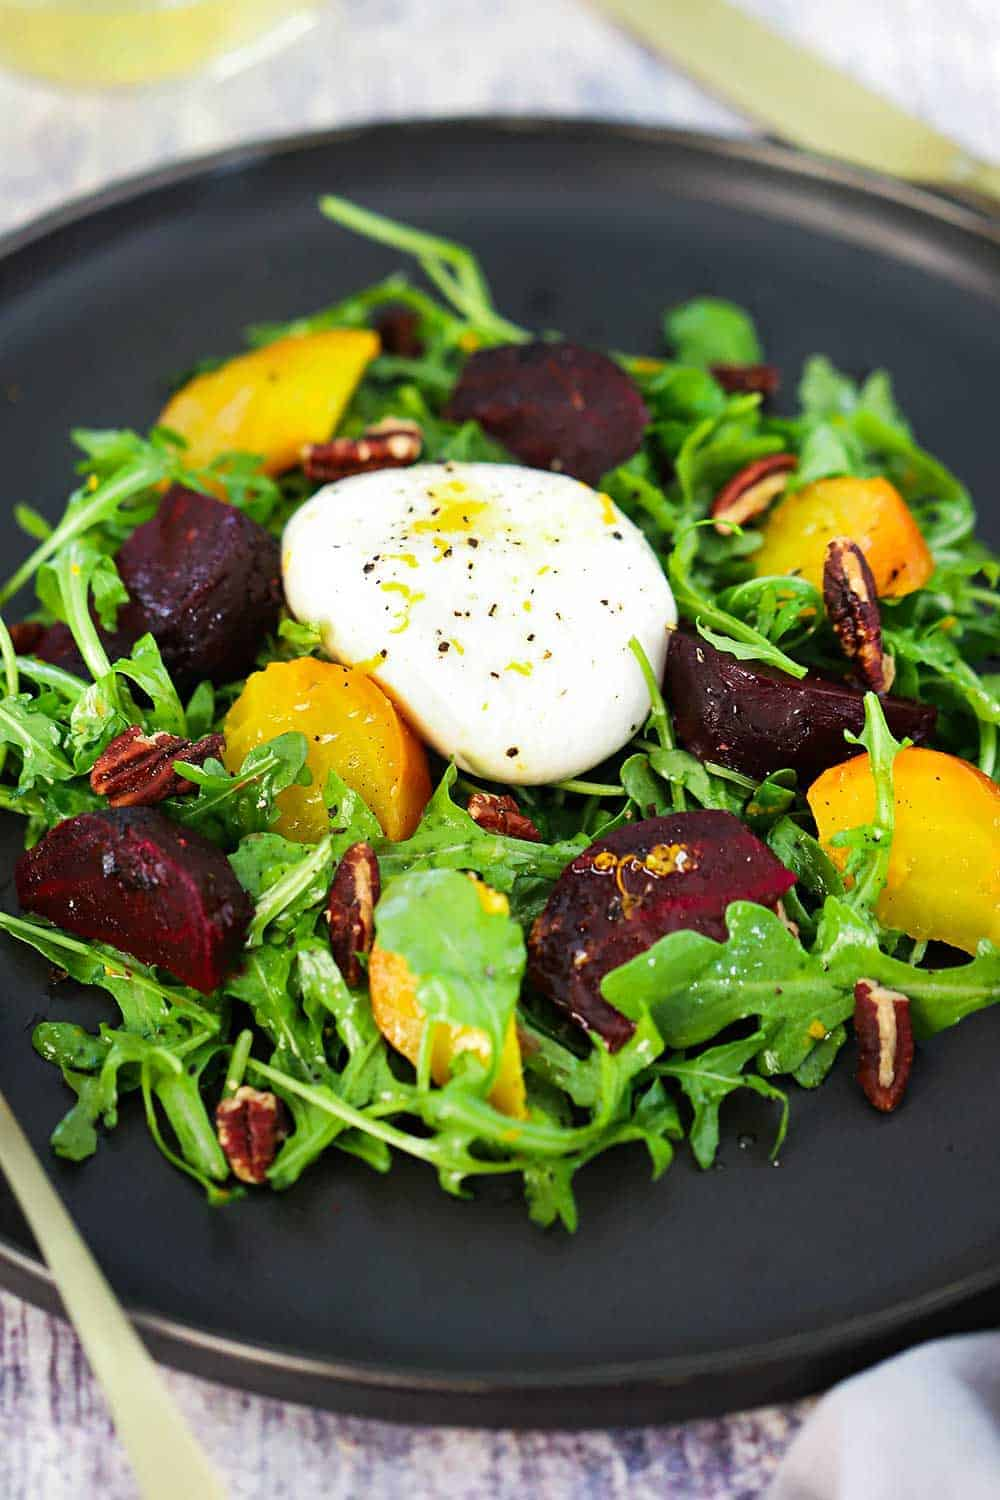 A dark circular plate filled with roasted beet and burrata salad.